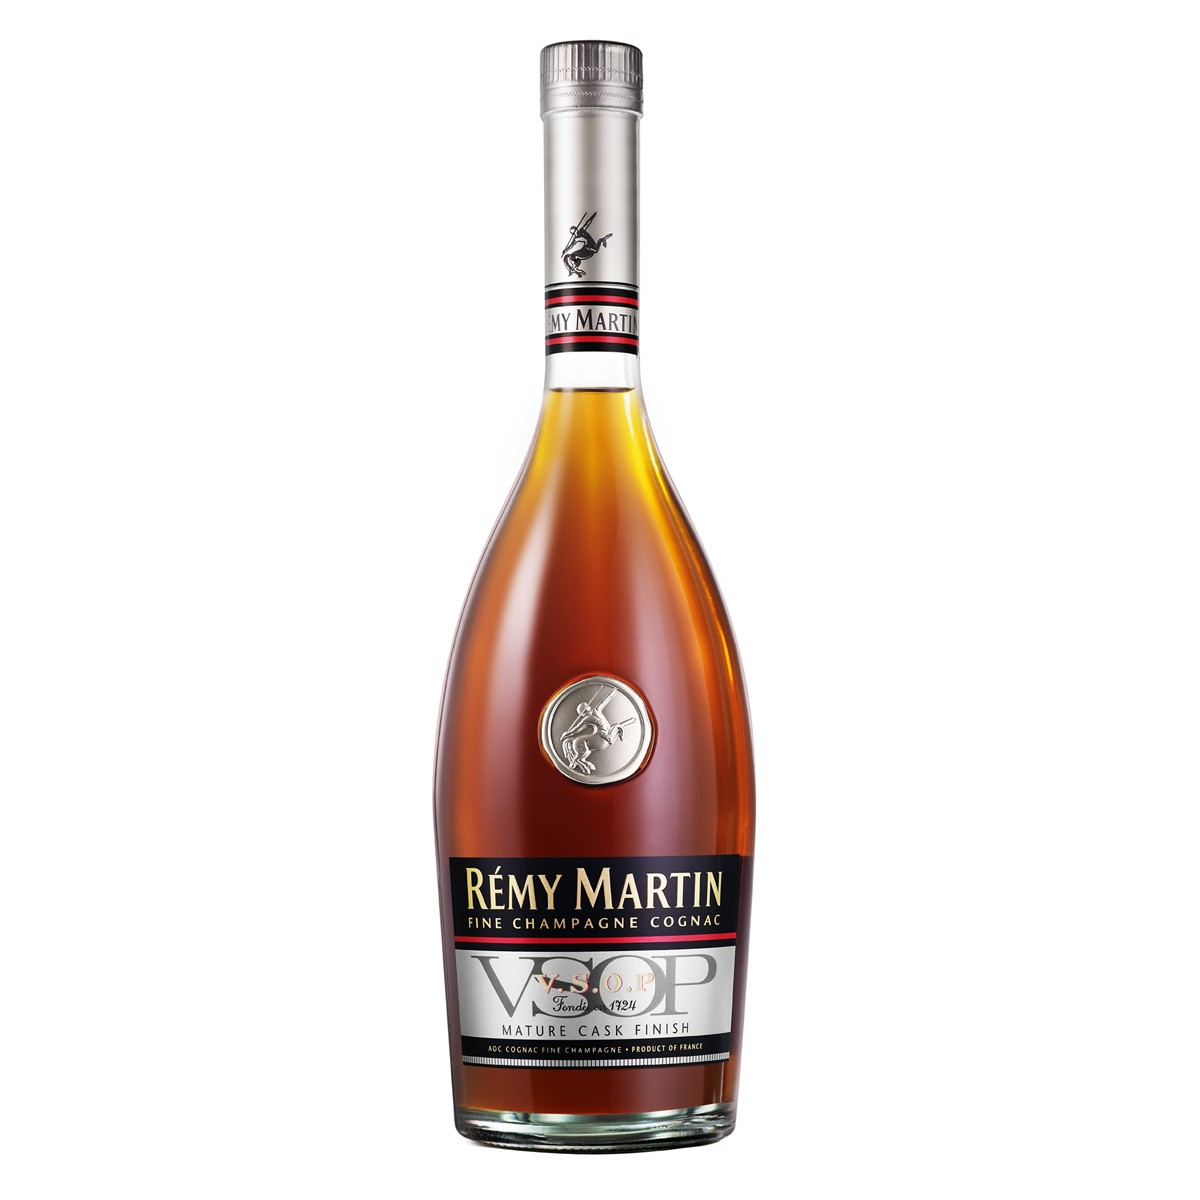 remy martin how tall